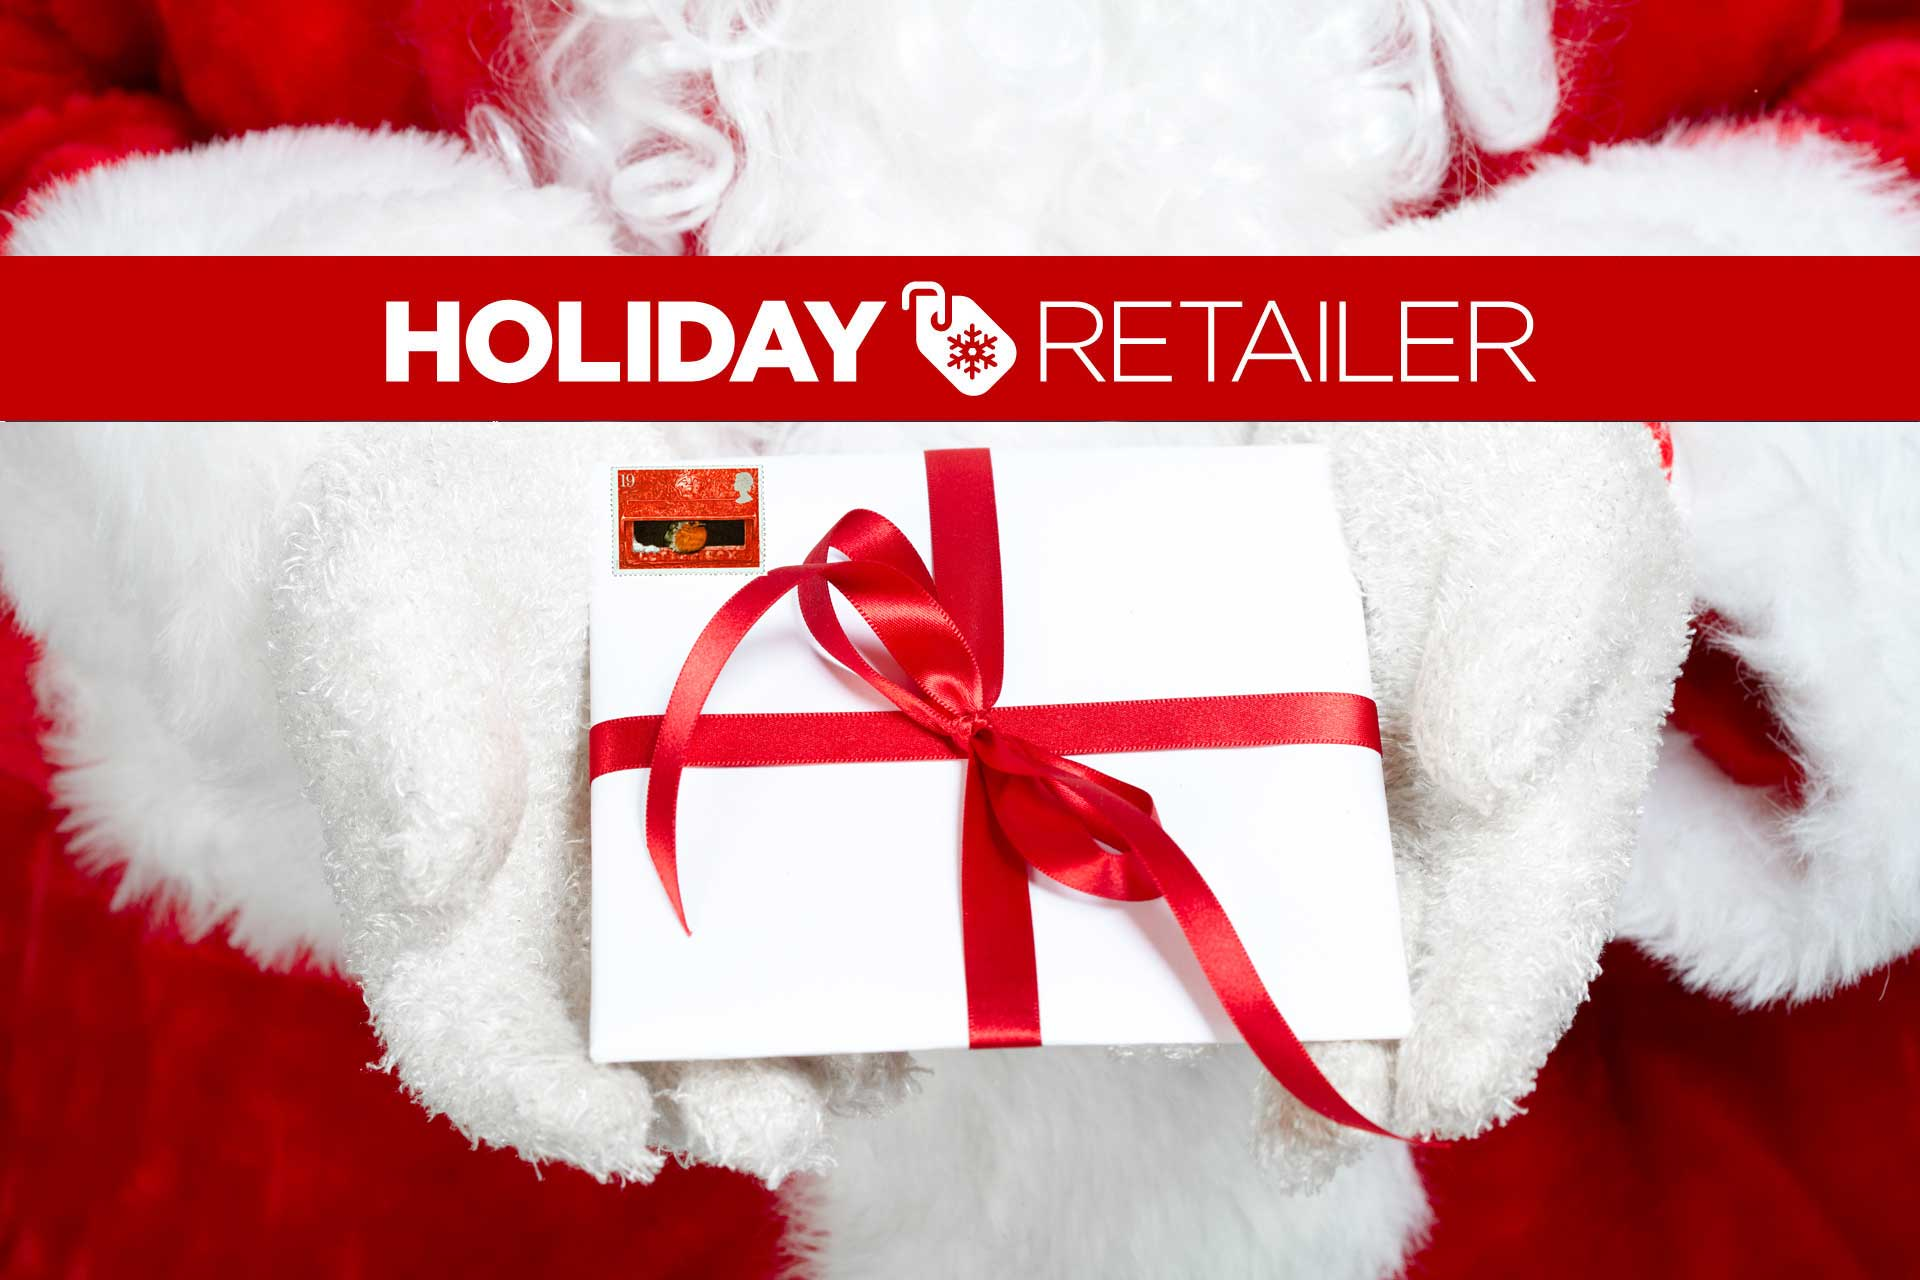 41% report doing majority of their holiday shopping online last year [Survey]